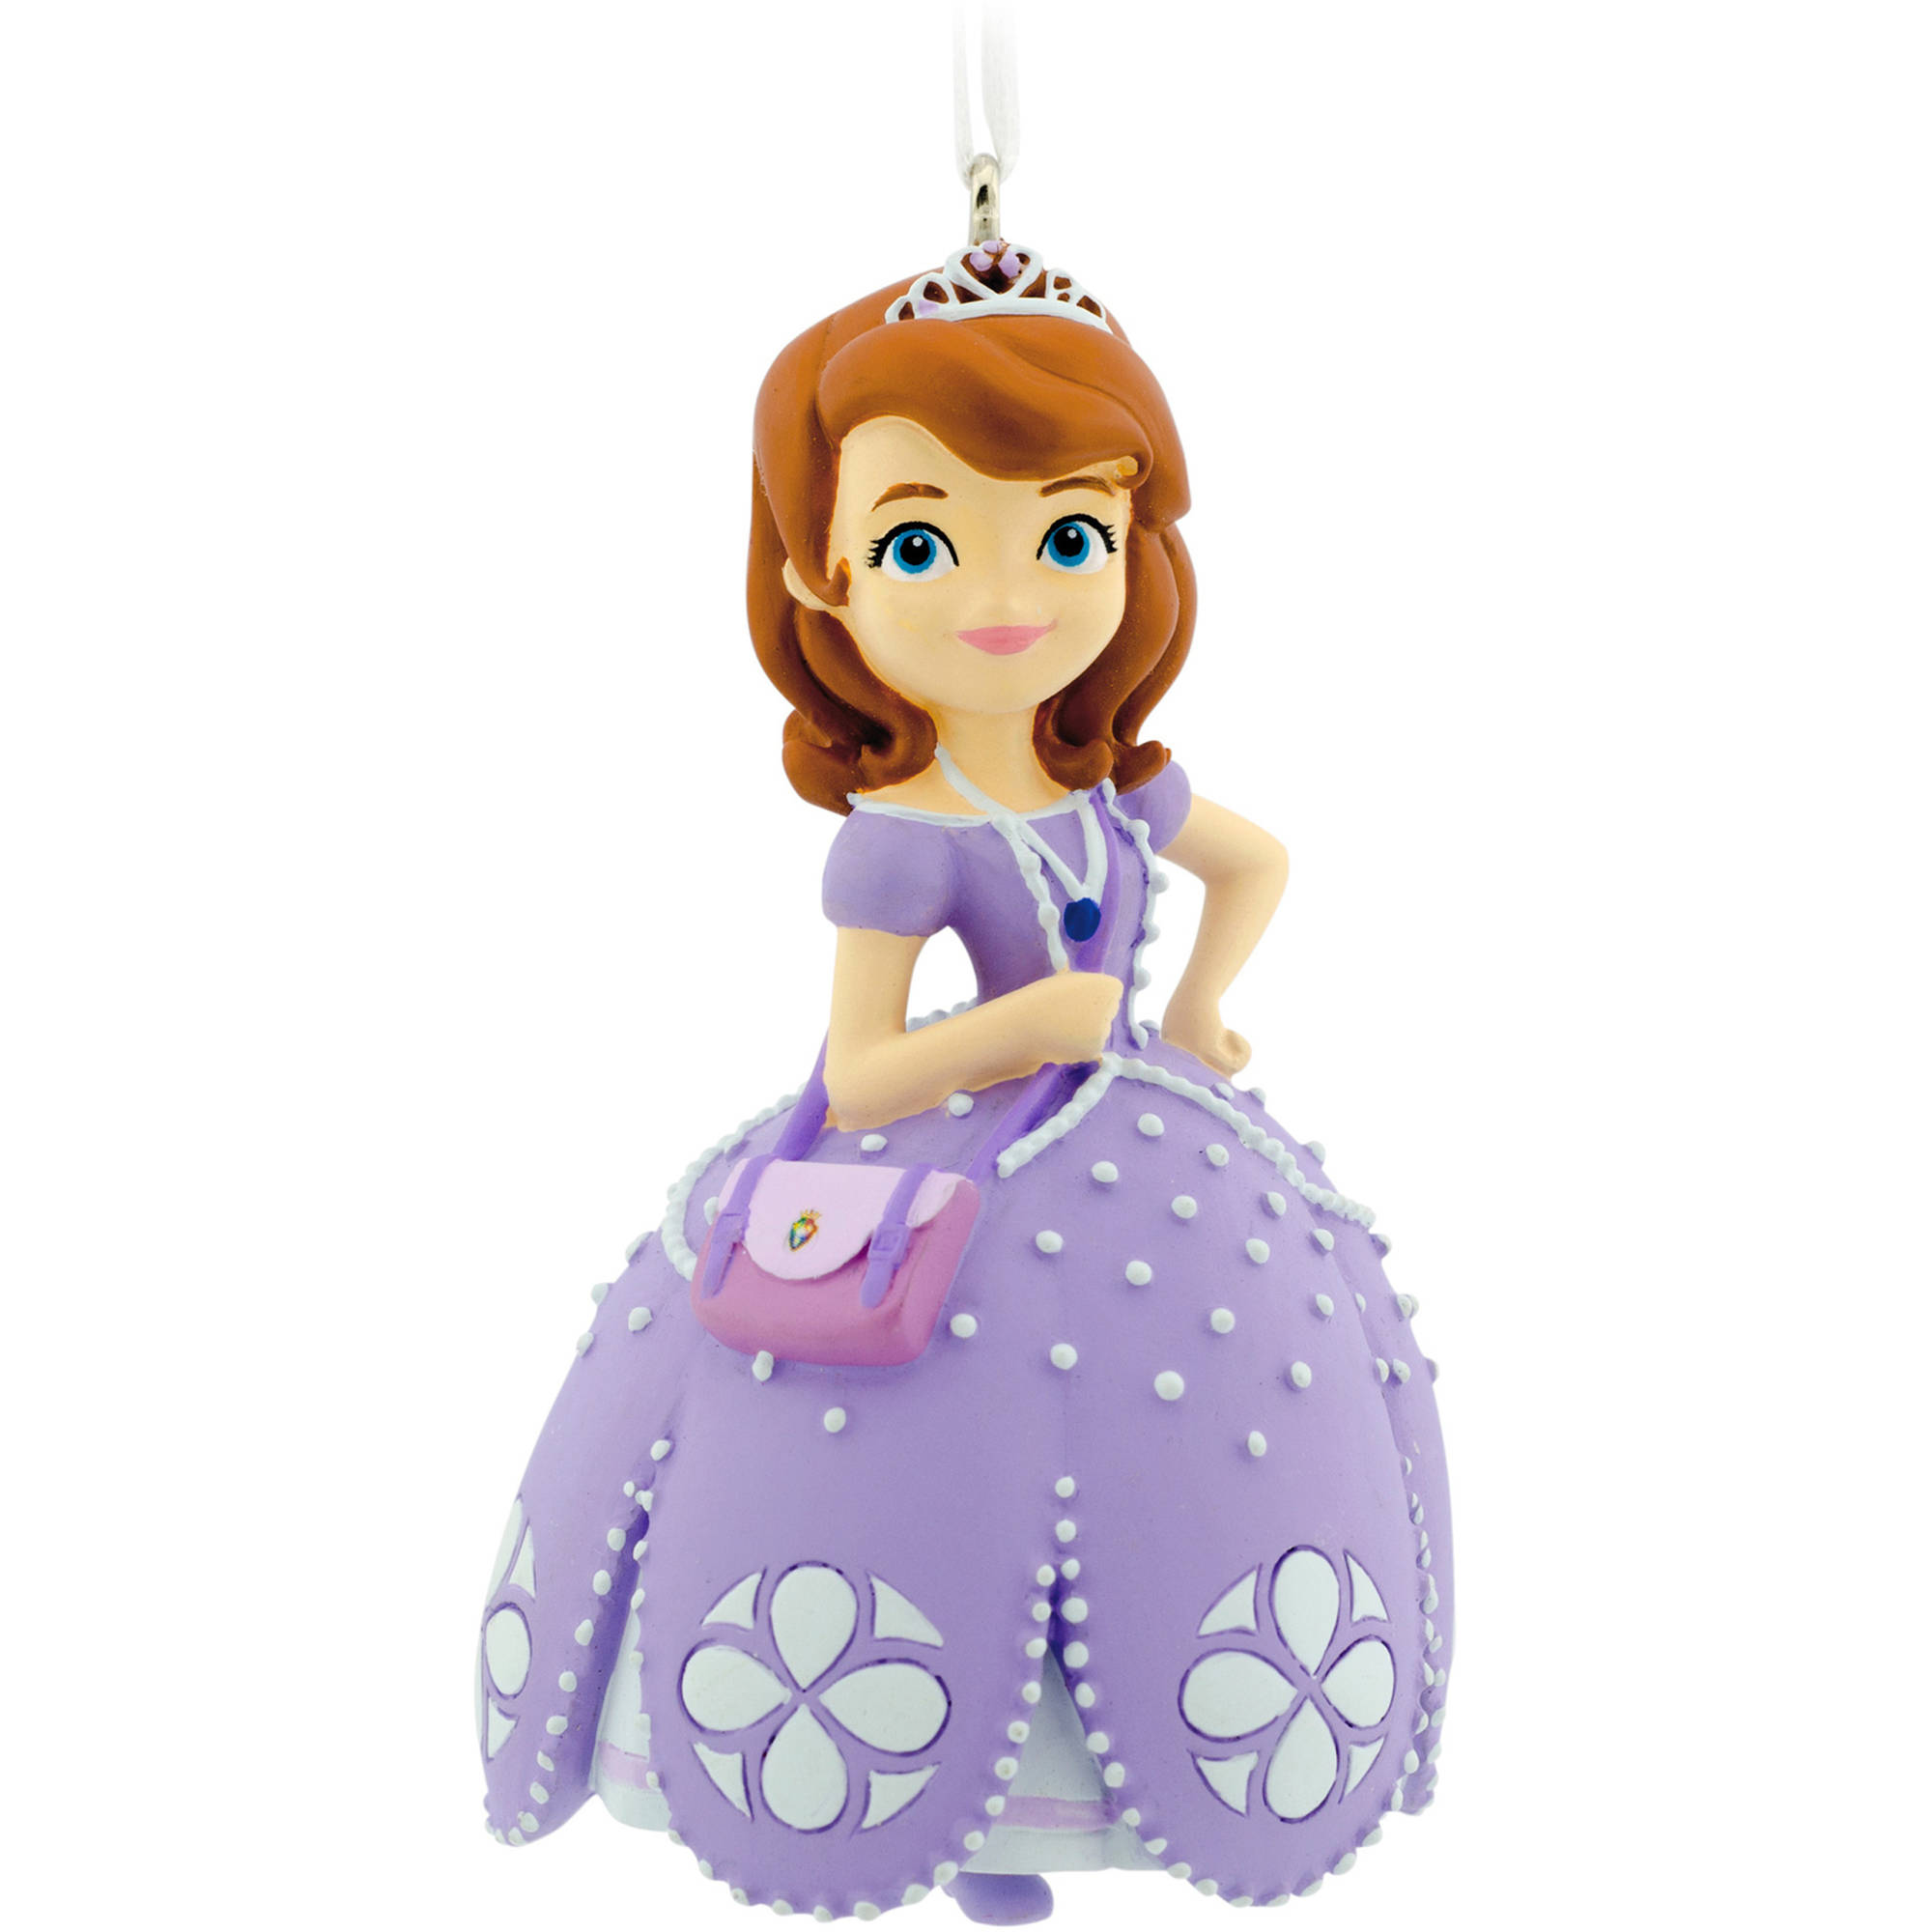 Hallmark Disney Junior's Sofia the First Resin Ornament